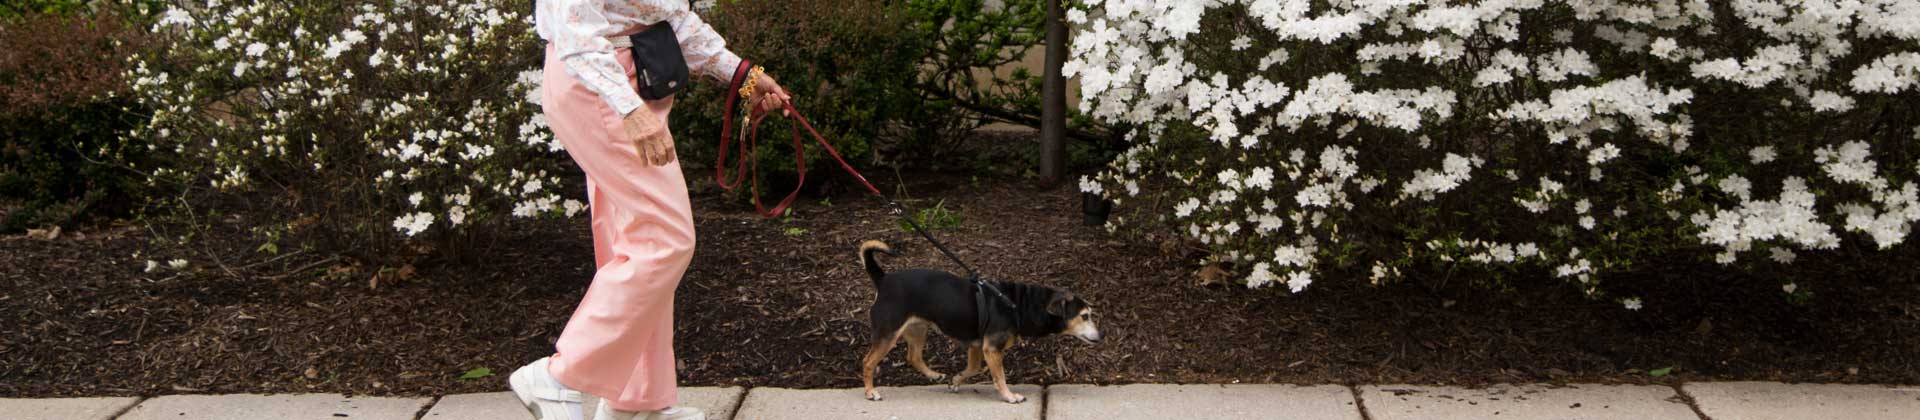 Image of the legs of a senior woman as she walks her dog